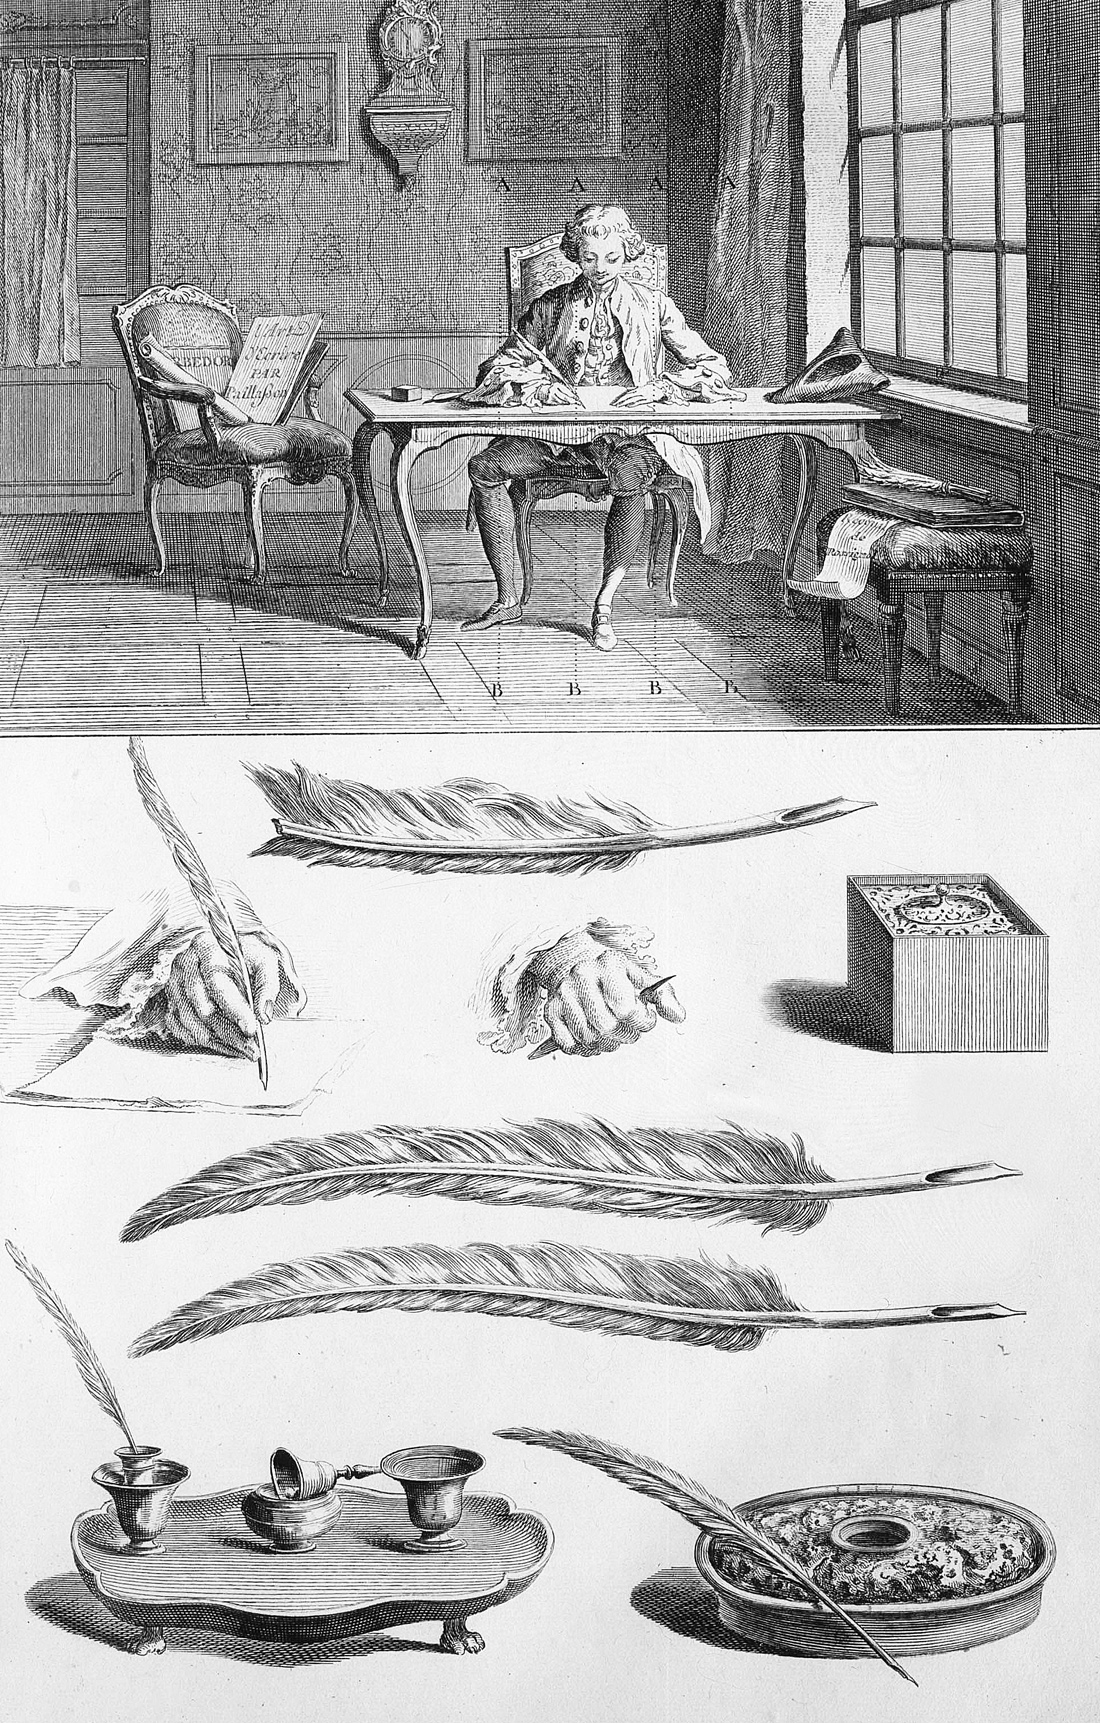 The Art of Writing (Man), from Diderot's Encyclopédie, 1751.